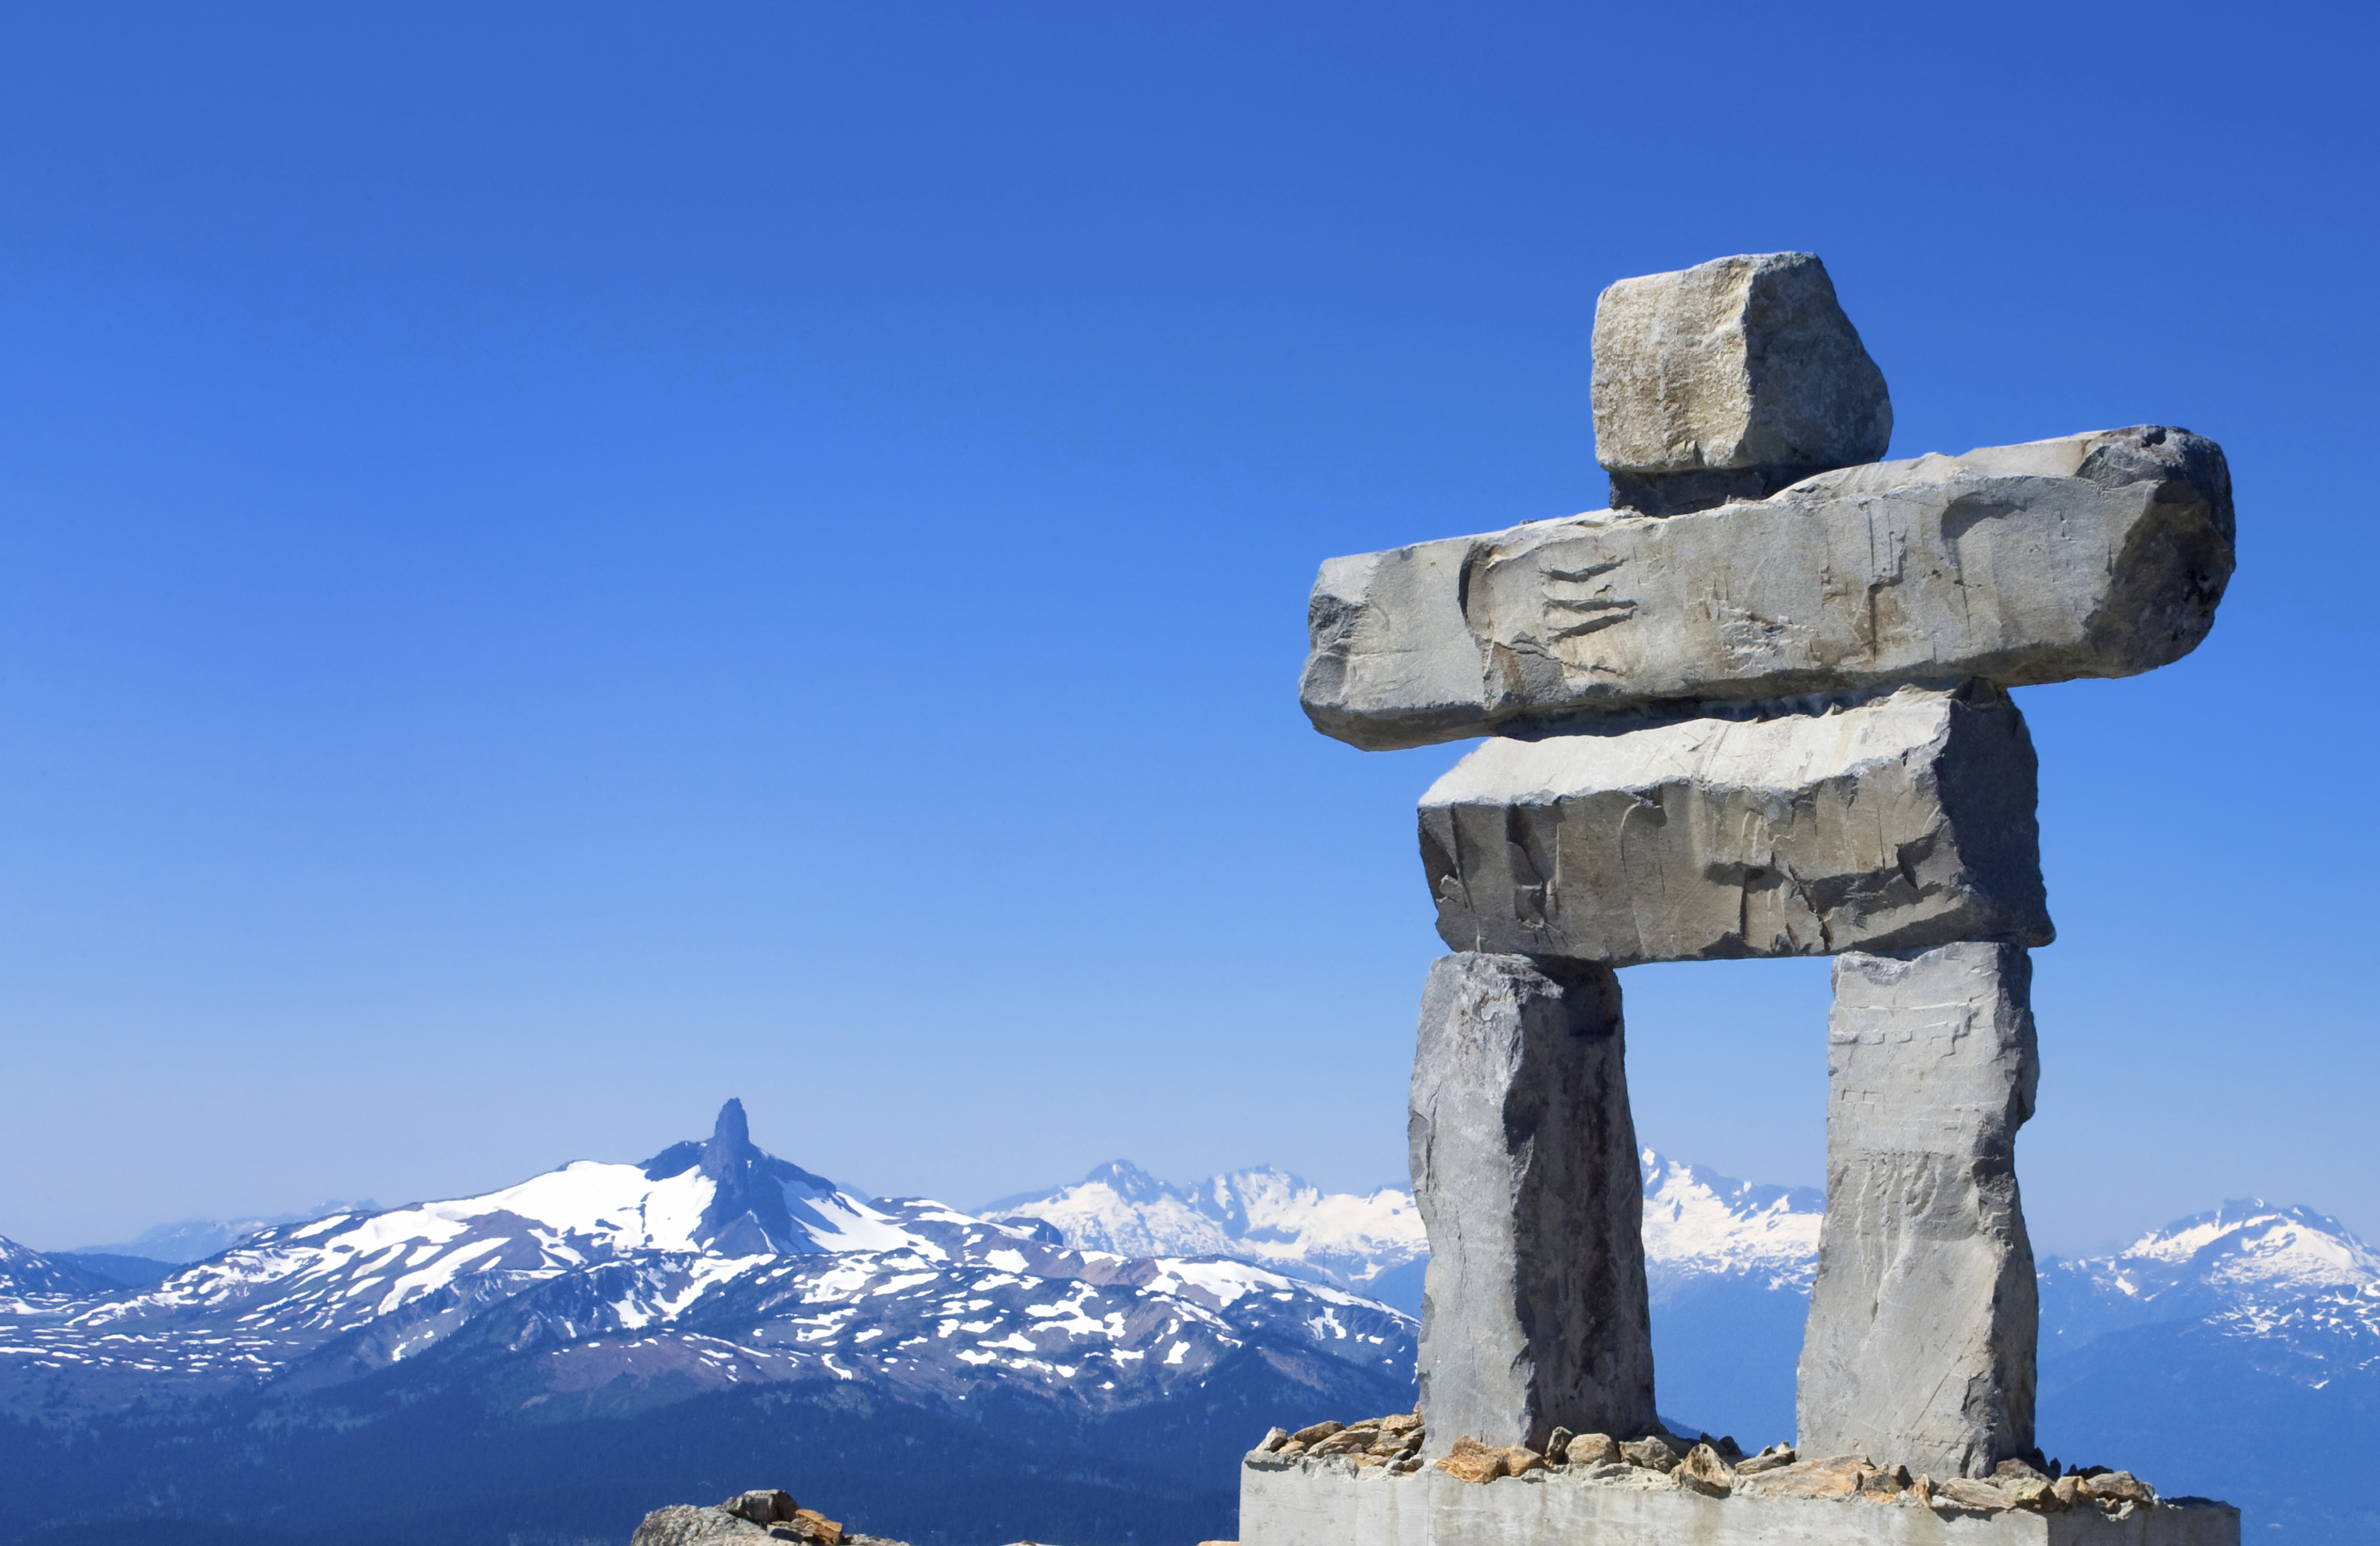 The other two Whistler Mountains don't have giant Inuit inukshuks ...